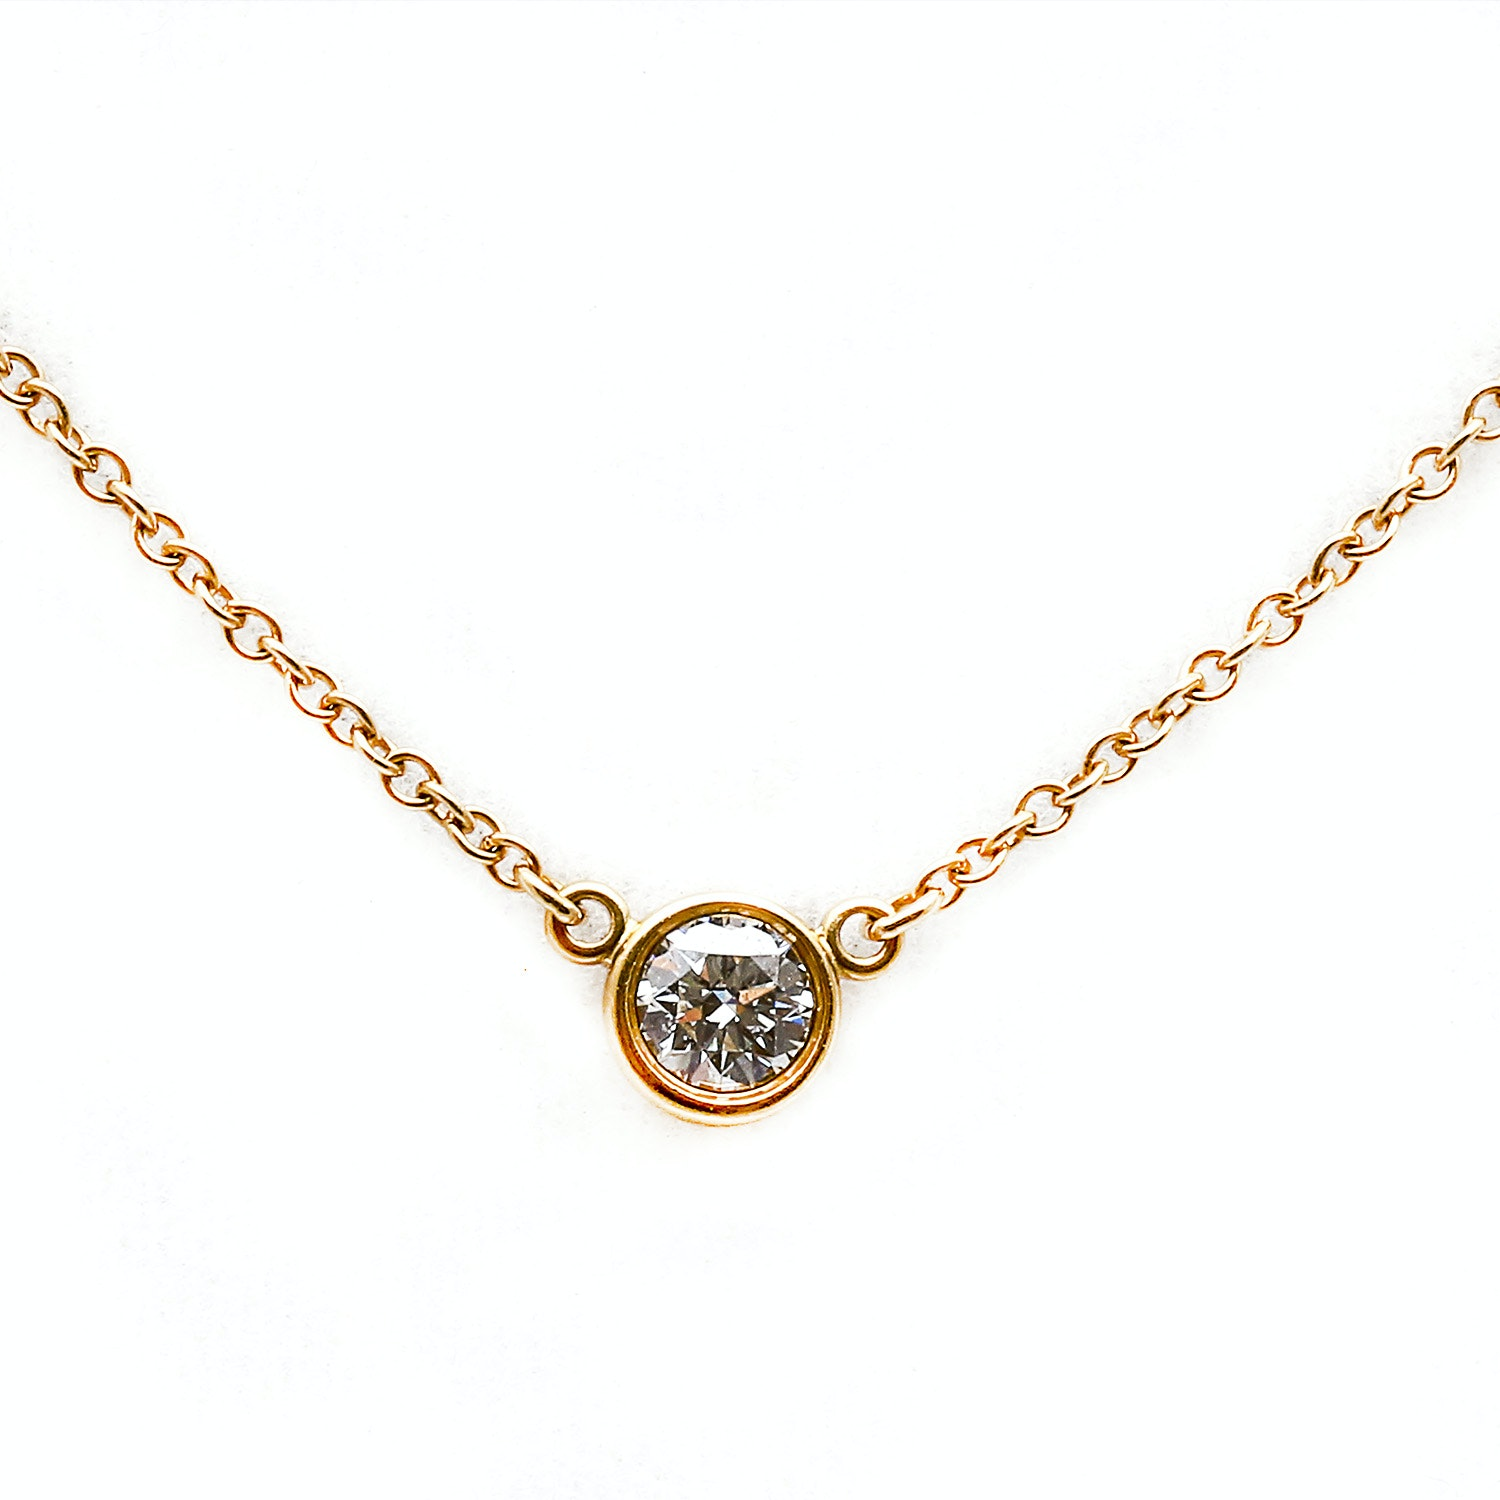 18K Tiffany & Co. Yellow Gold Diamond Solitaire Pendant Necklace